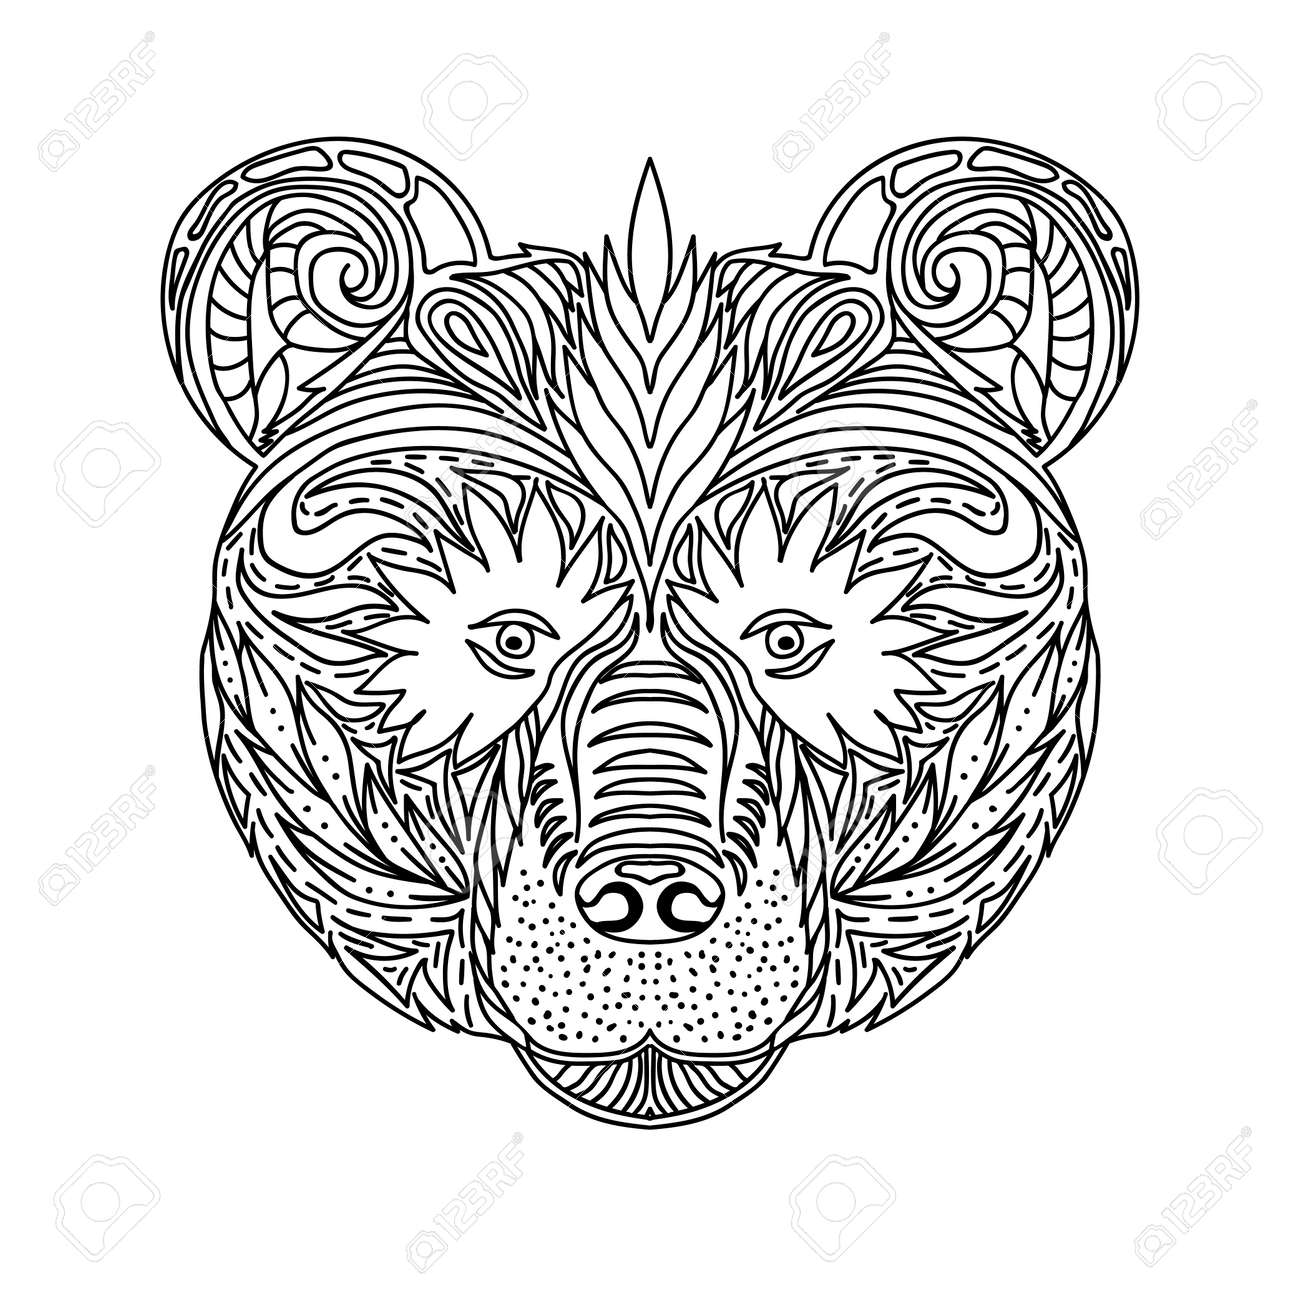 Black and white ornament faces wild beast of the forest bear, ornamental lace design. Page for adult coloring books. Hand drawn ink pattern. Vector illustration - 50677194